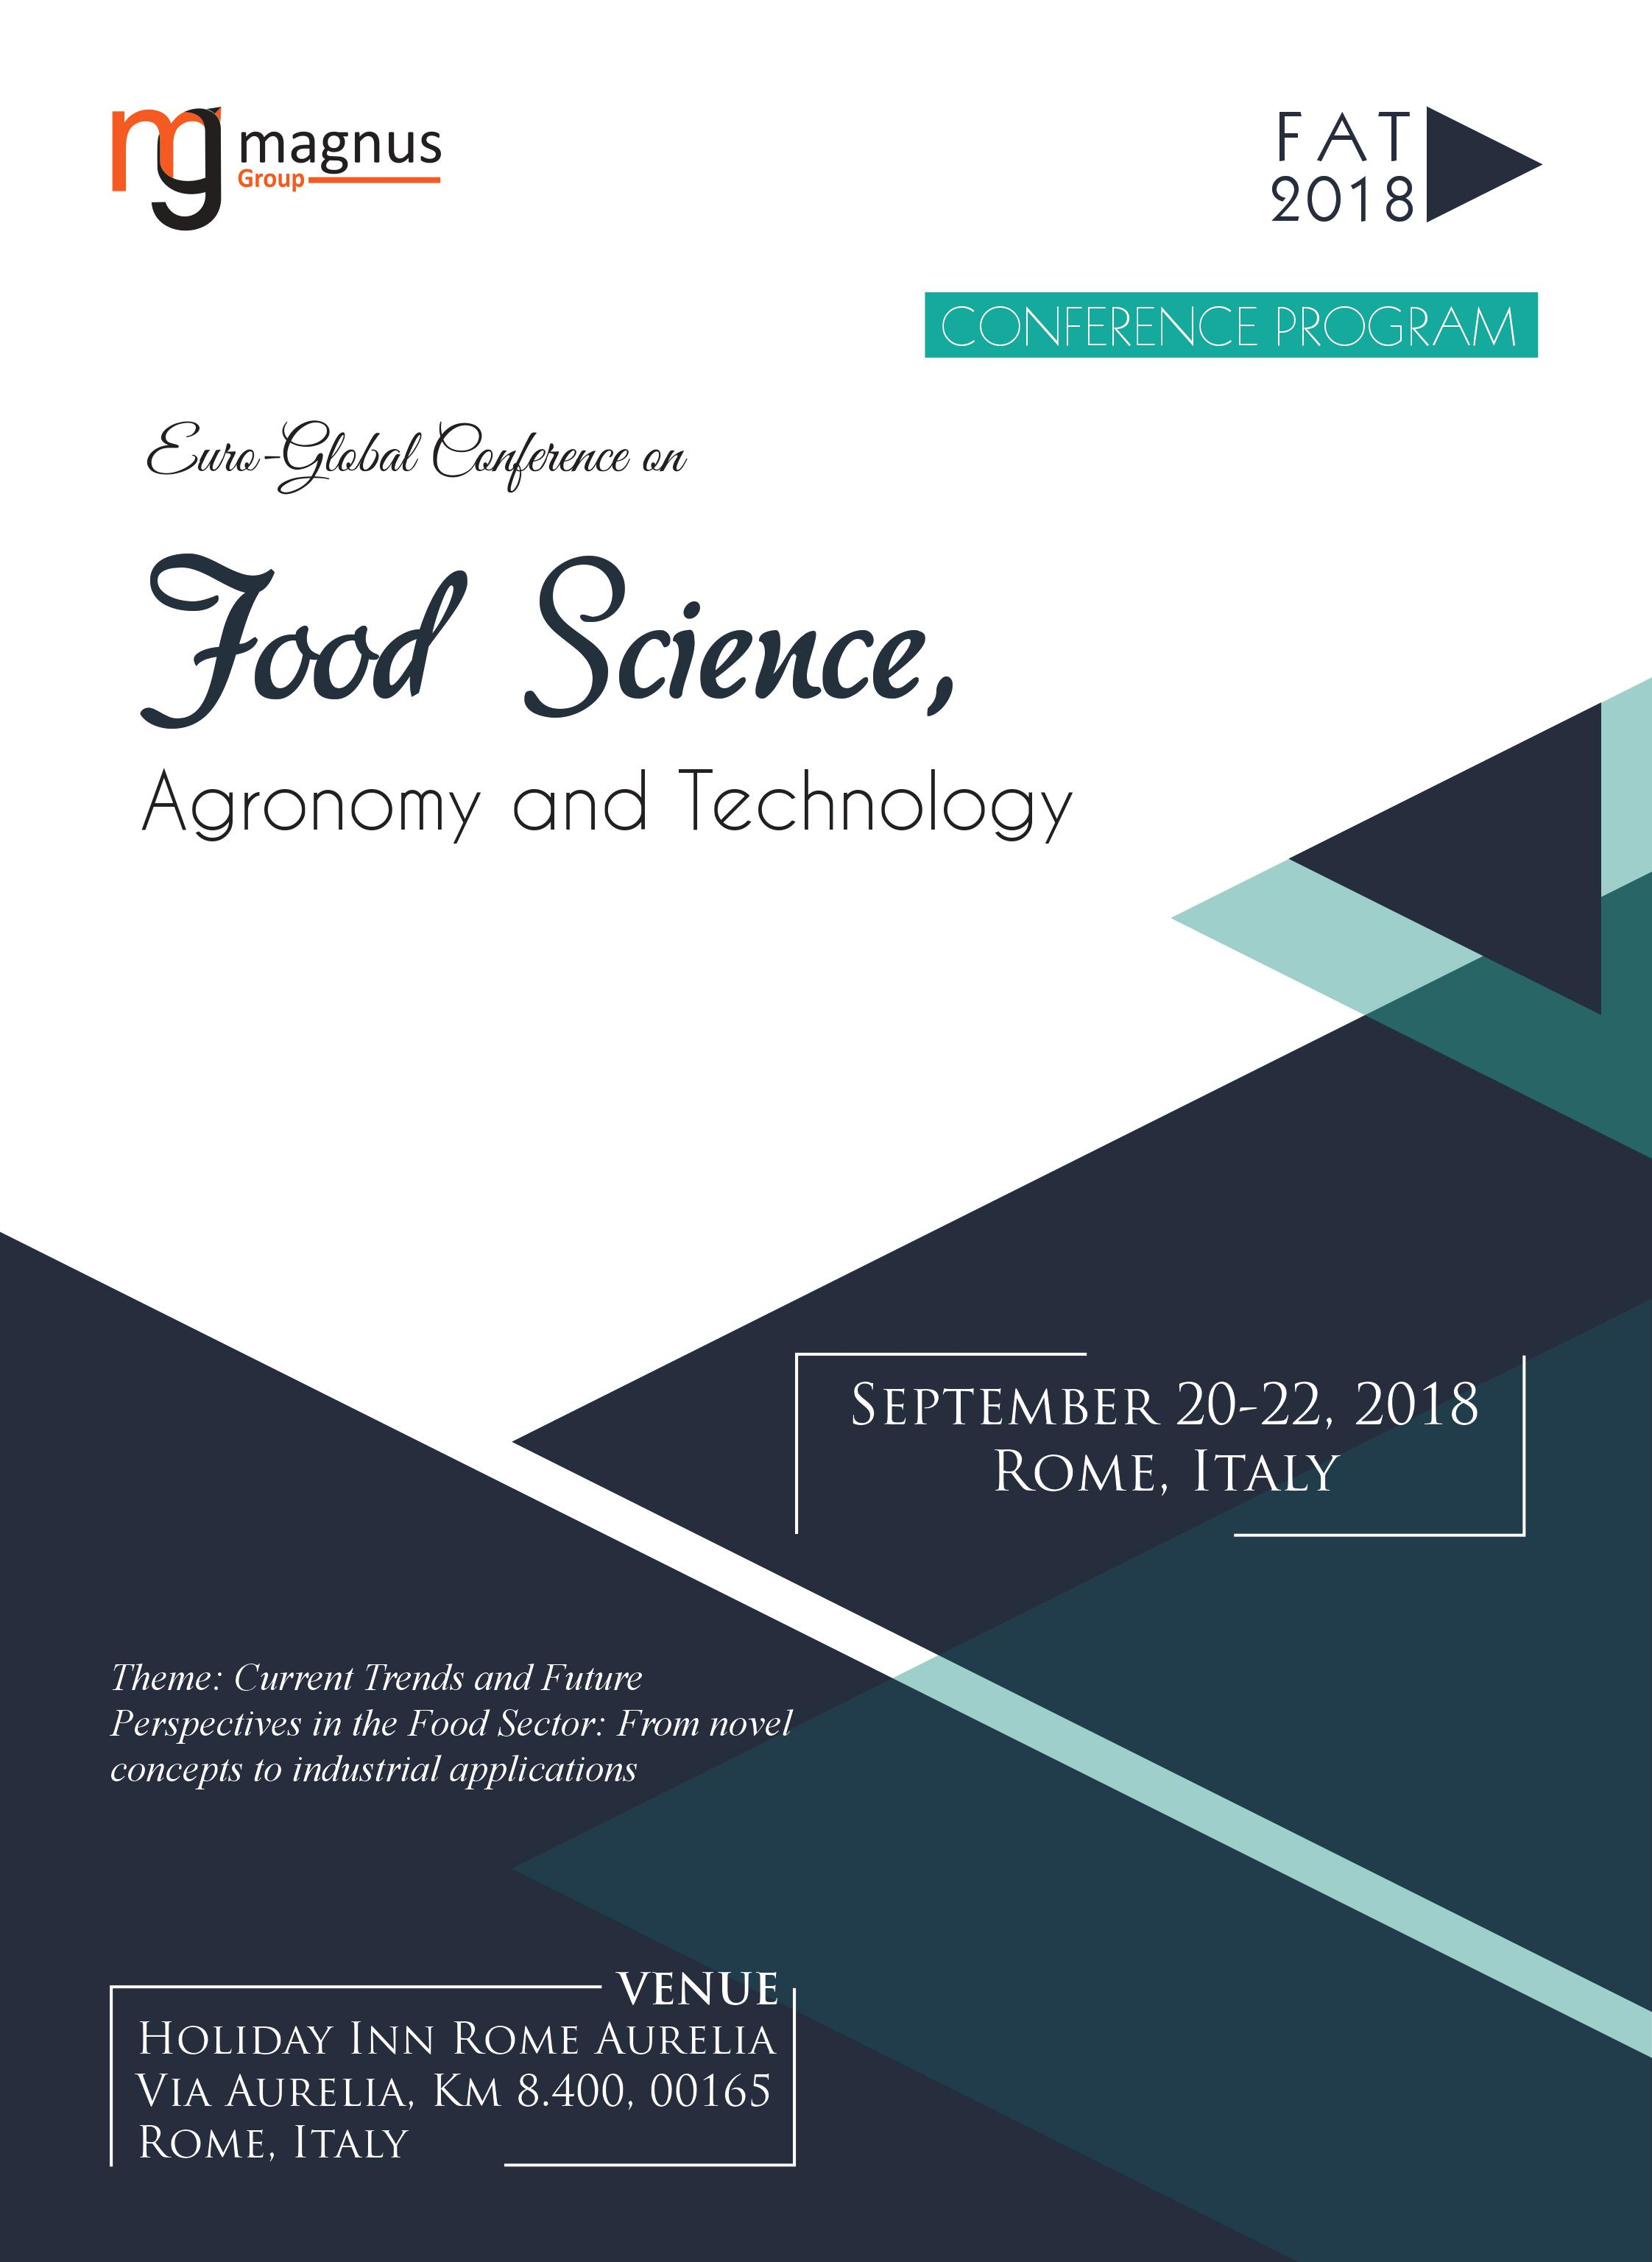 Euro-Global Conference on Food Science, Agronomy and Technology | Rome, Italy Program